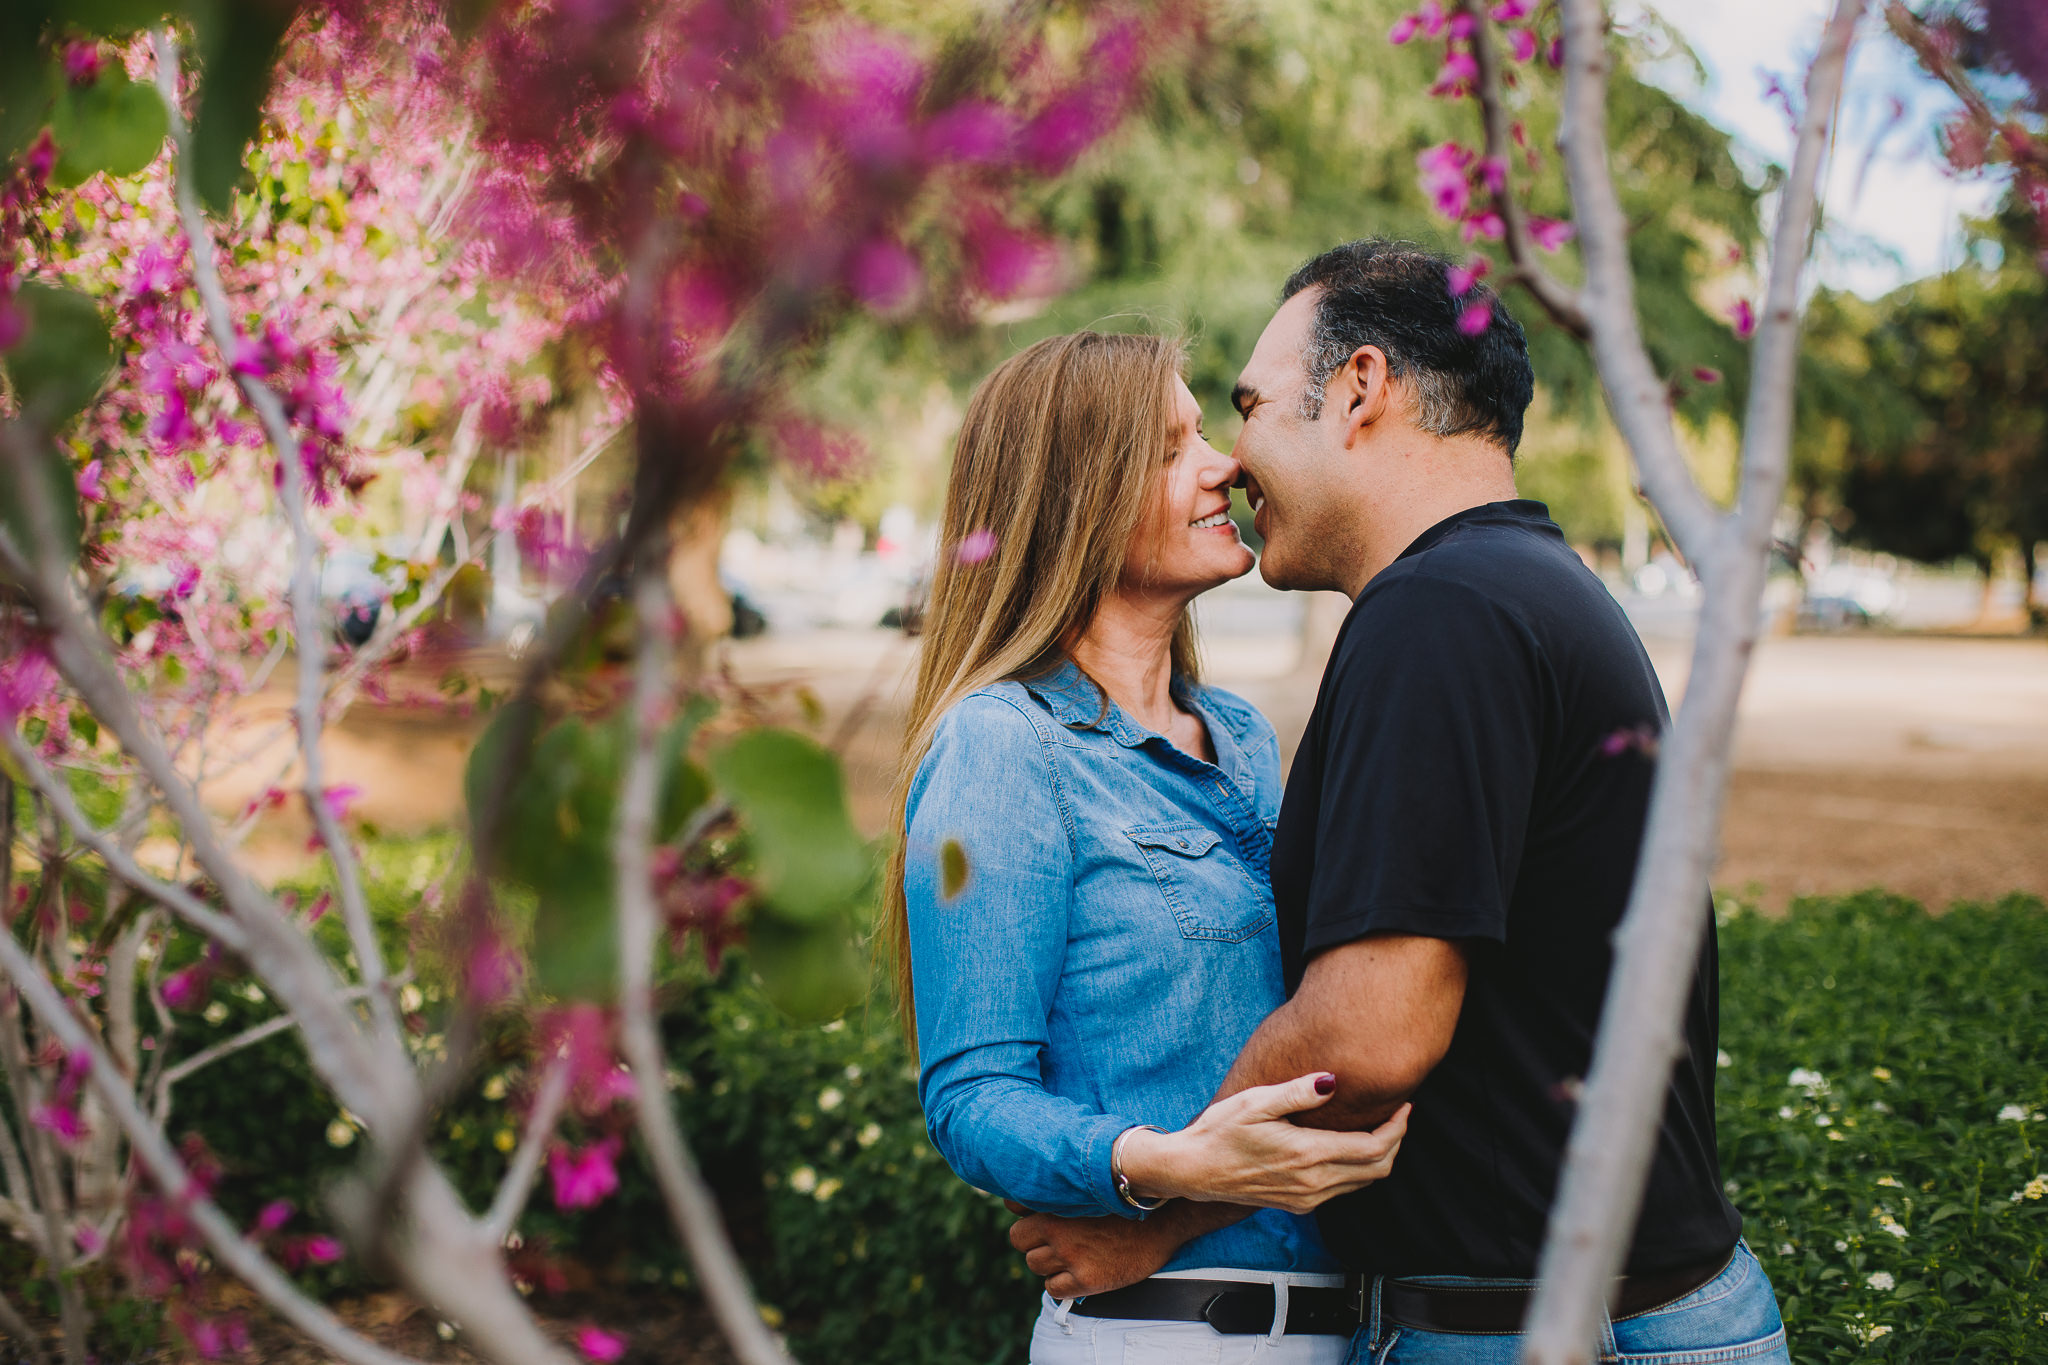 Archer Inspired Photography Los Angeles Orange County Long Beach Wedding Engagement Session Affordable Best Rated Lifestyle Documentary Photographer Robin and Ivan-11.jpg